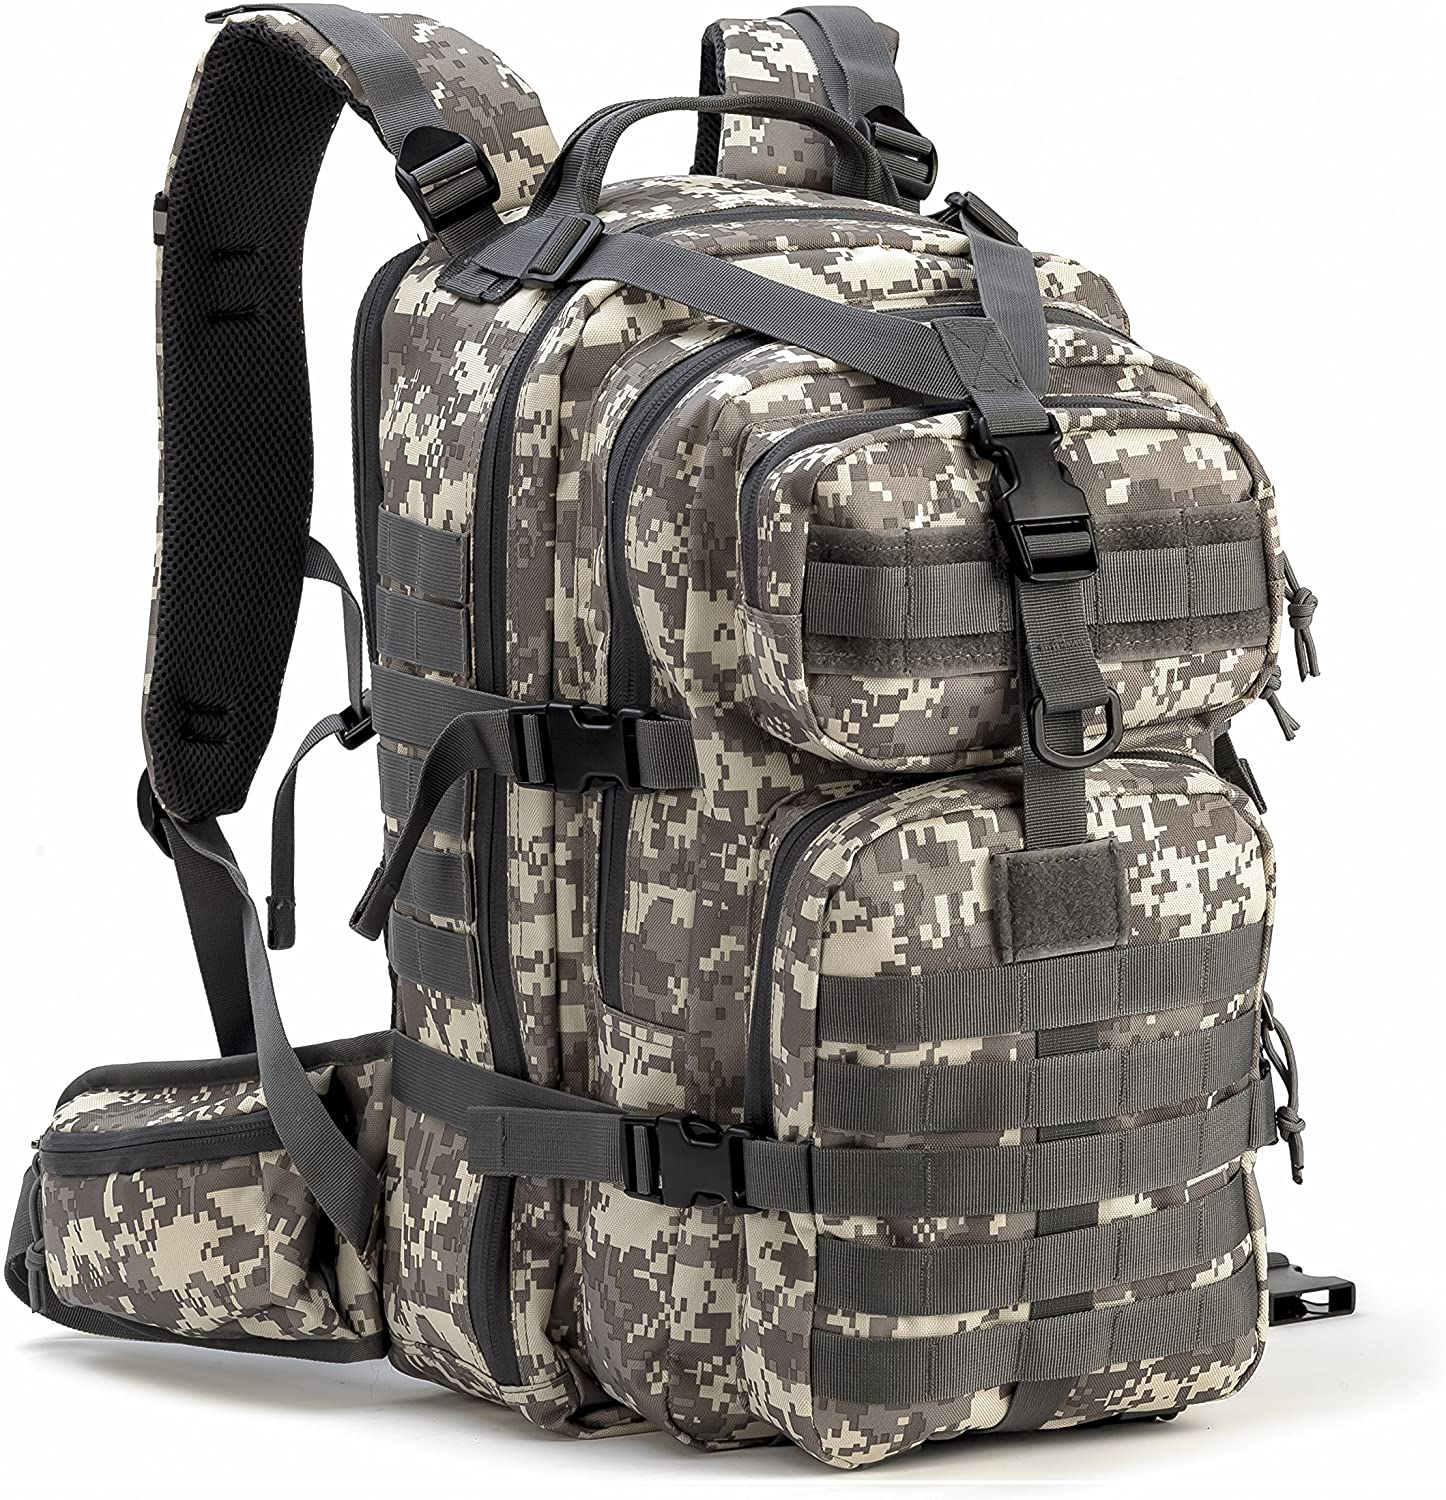 Doshwin Military Backpack Tactical Army Assault Pack US Molle Camo Rucksack for Men Women 40L